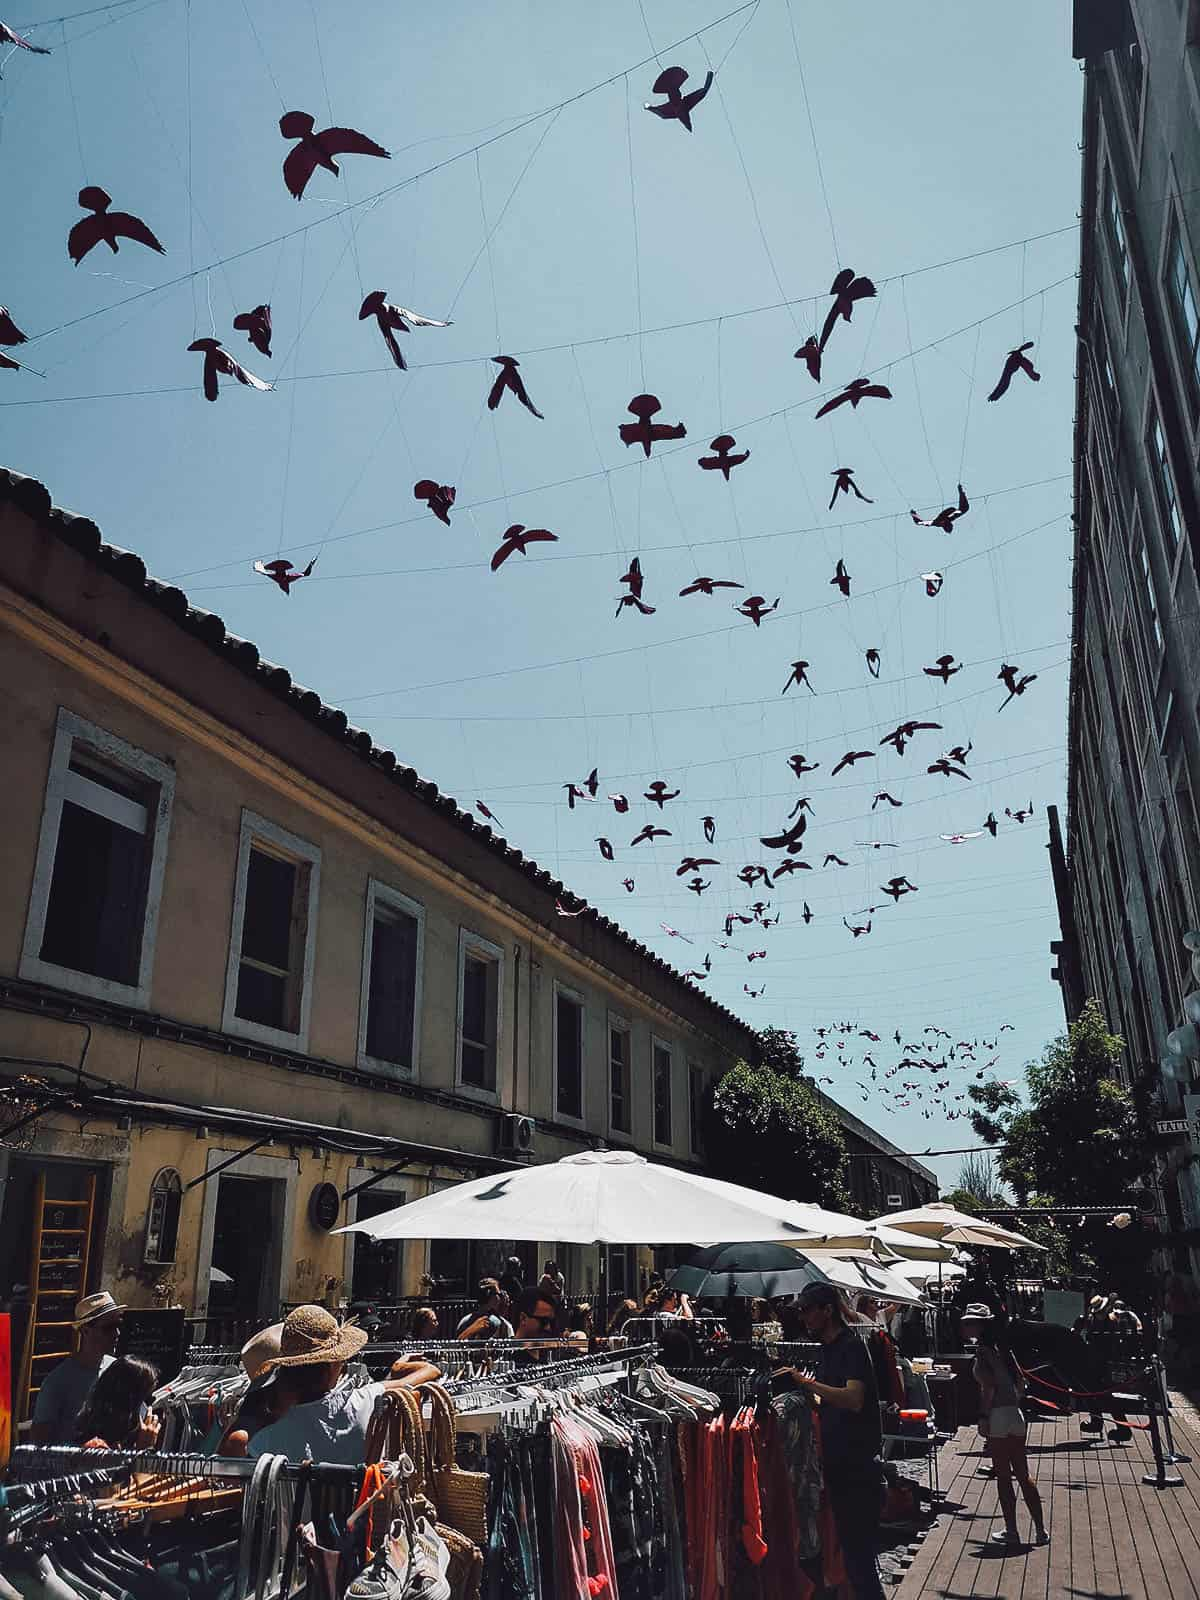 Hanging birds over clothing stalls